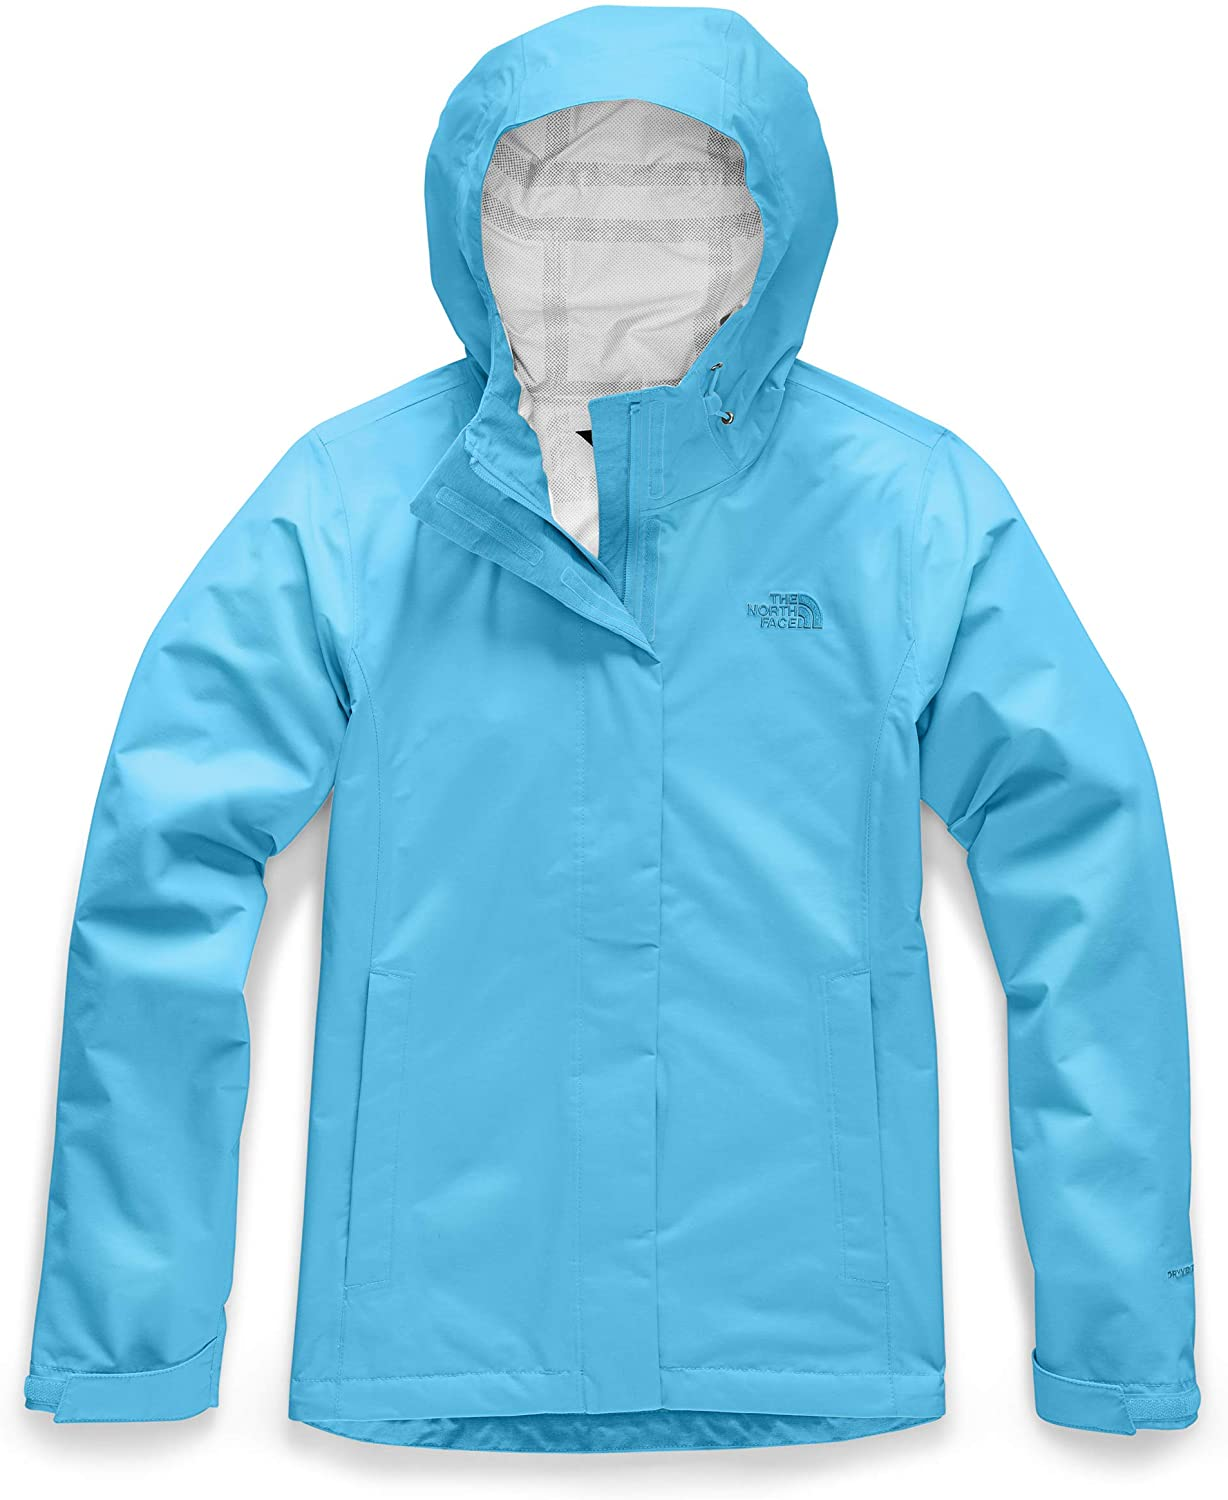 Womens The North Face Venture 2 Jacket Turquoise Blue